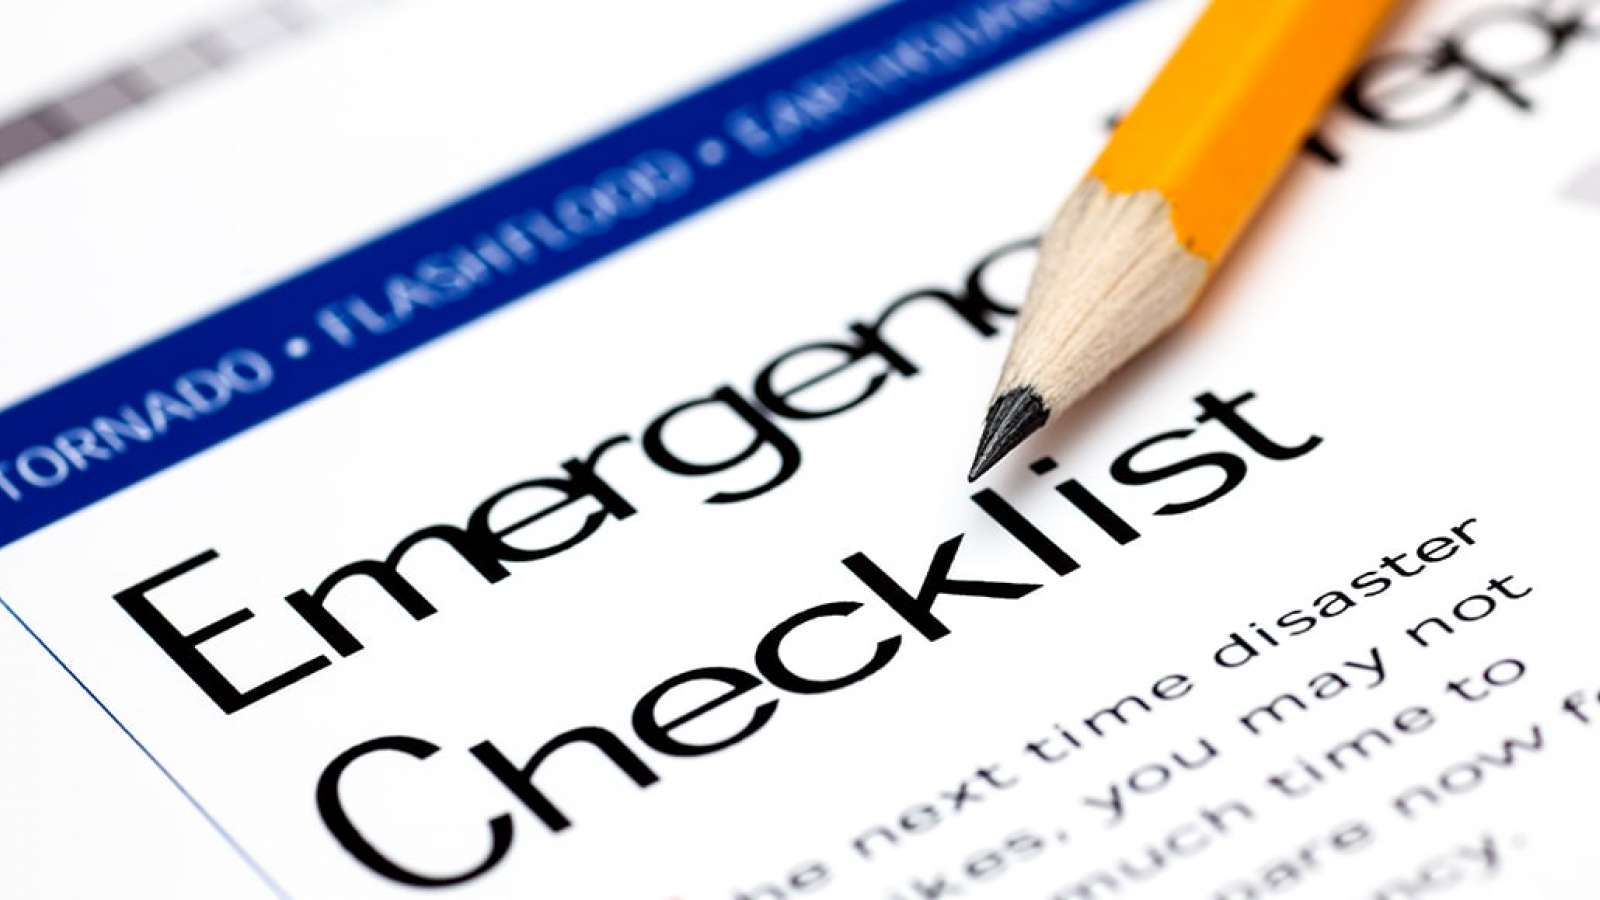 Emergency checklist sheet with pencil on it